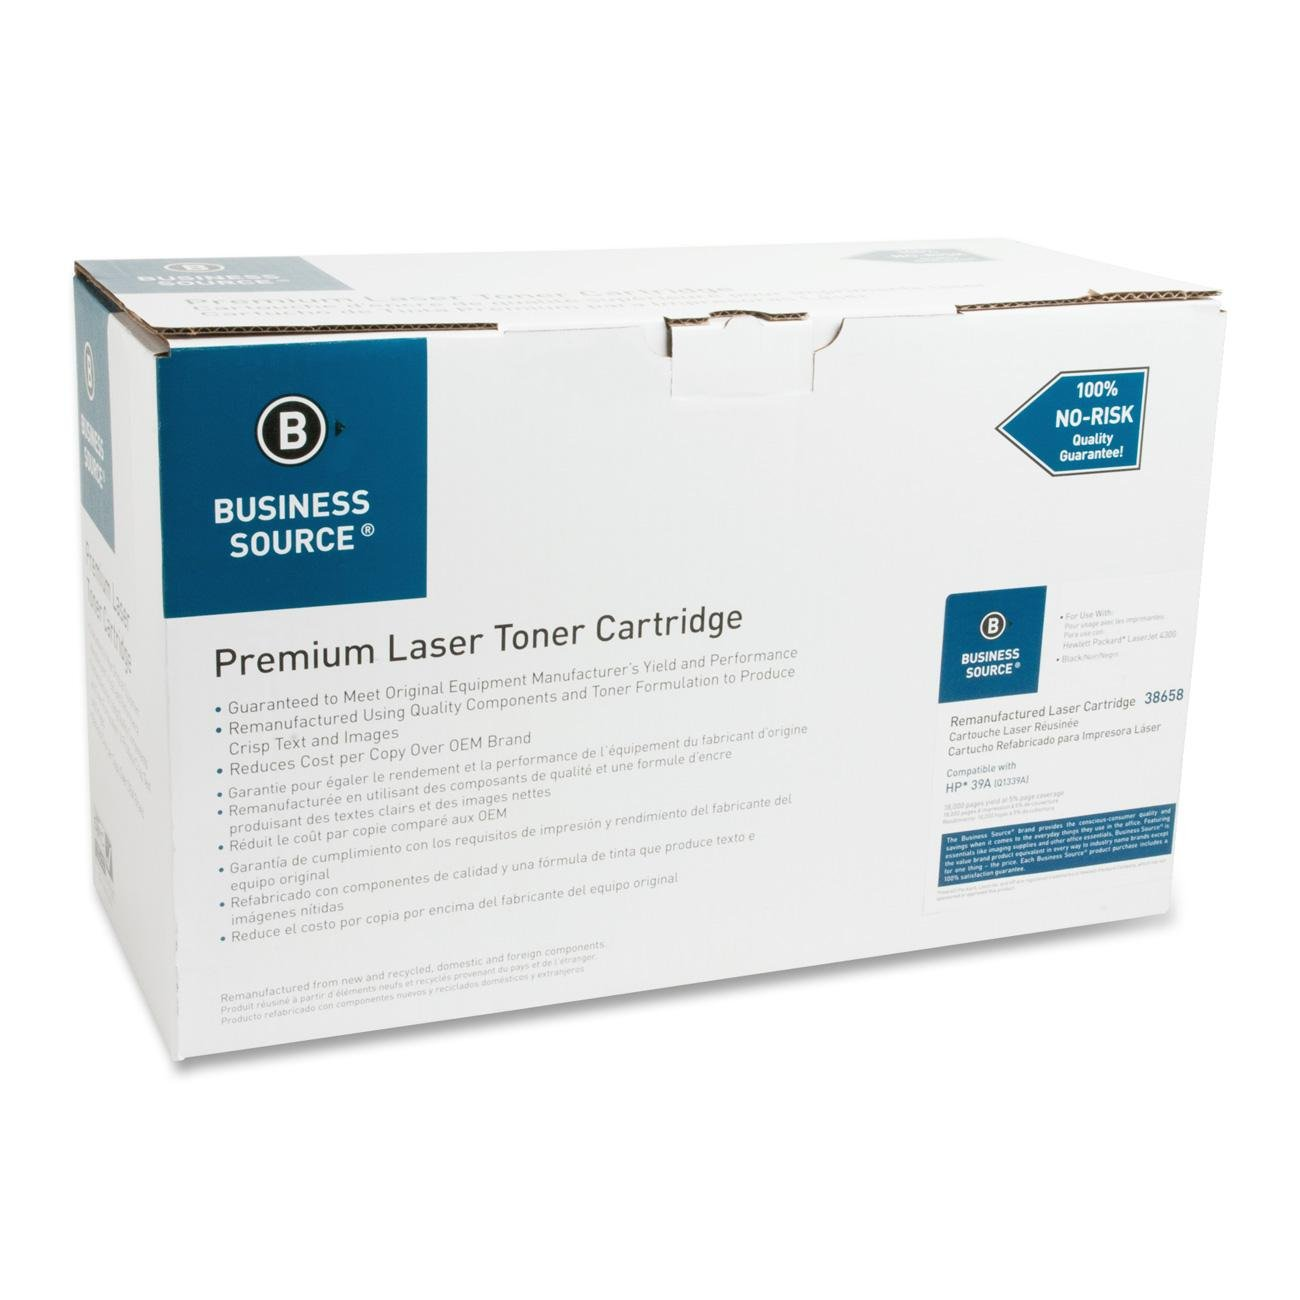 Amazon.com: Quality Product By Business Source - Laser Toner ...